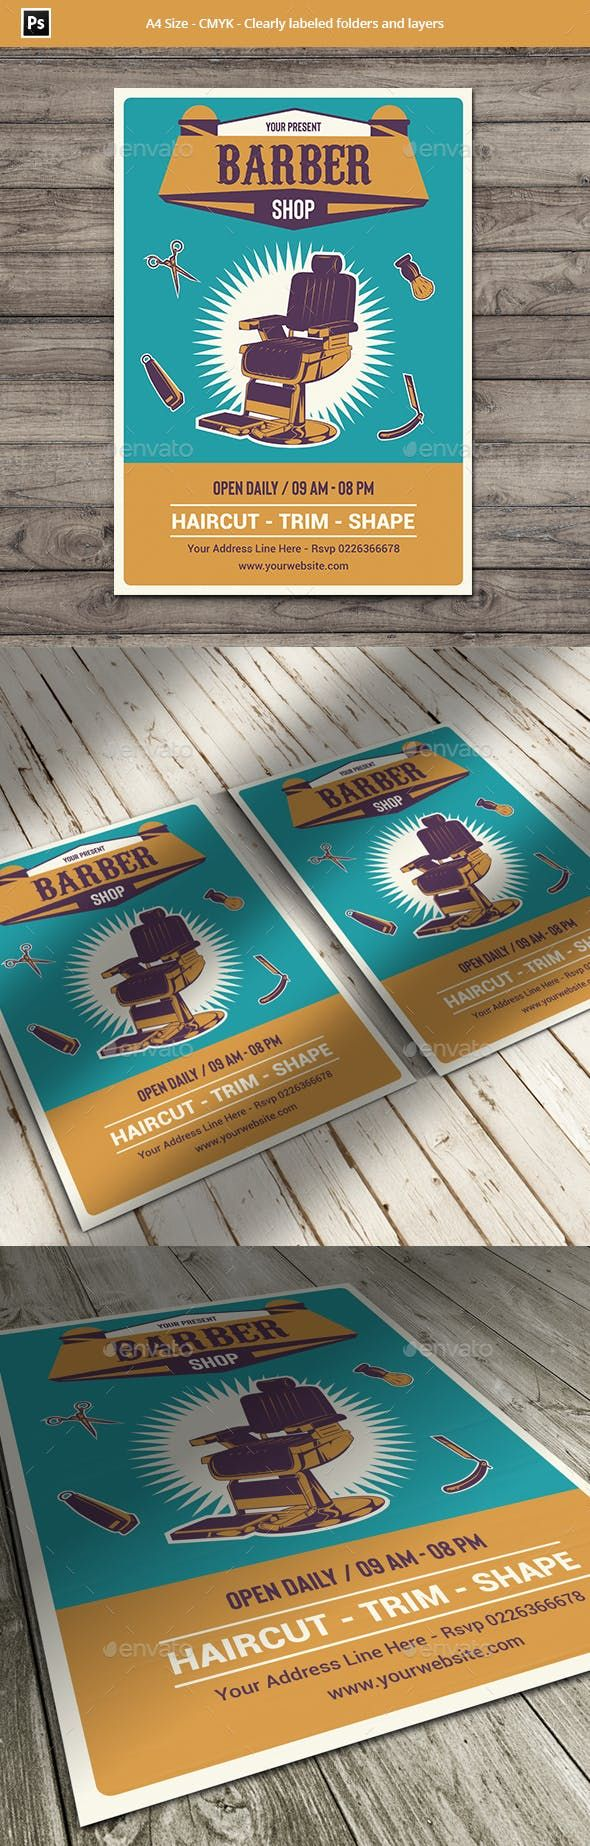 pin by best flyer designs on barbershop flyer templates